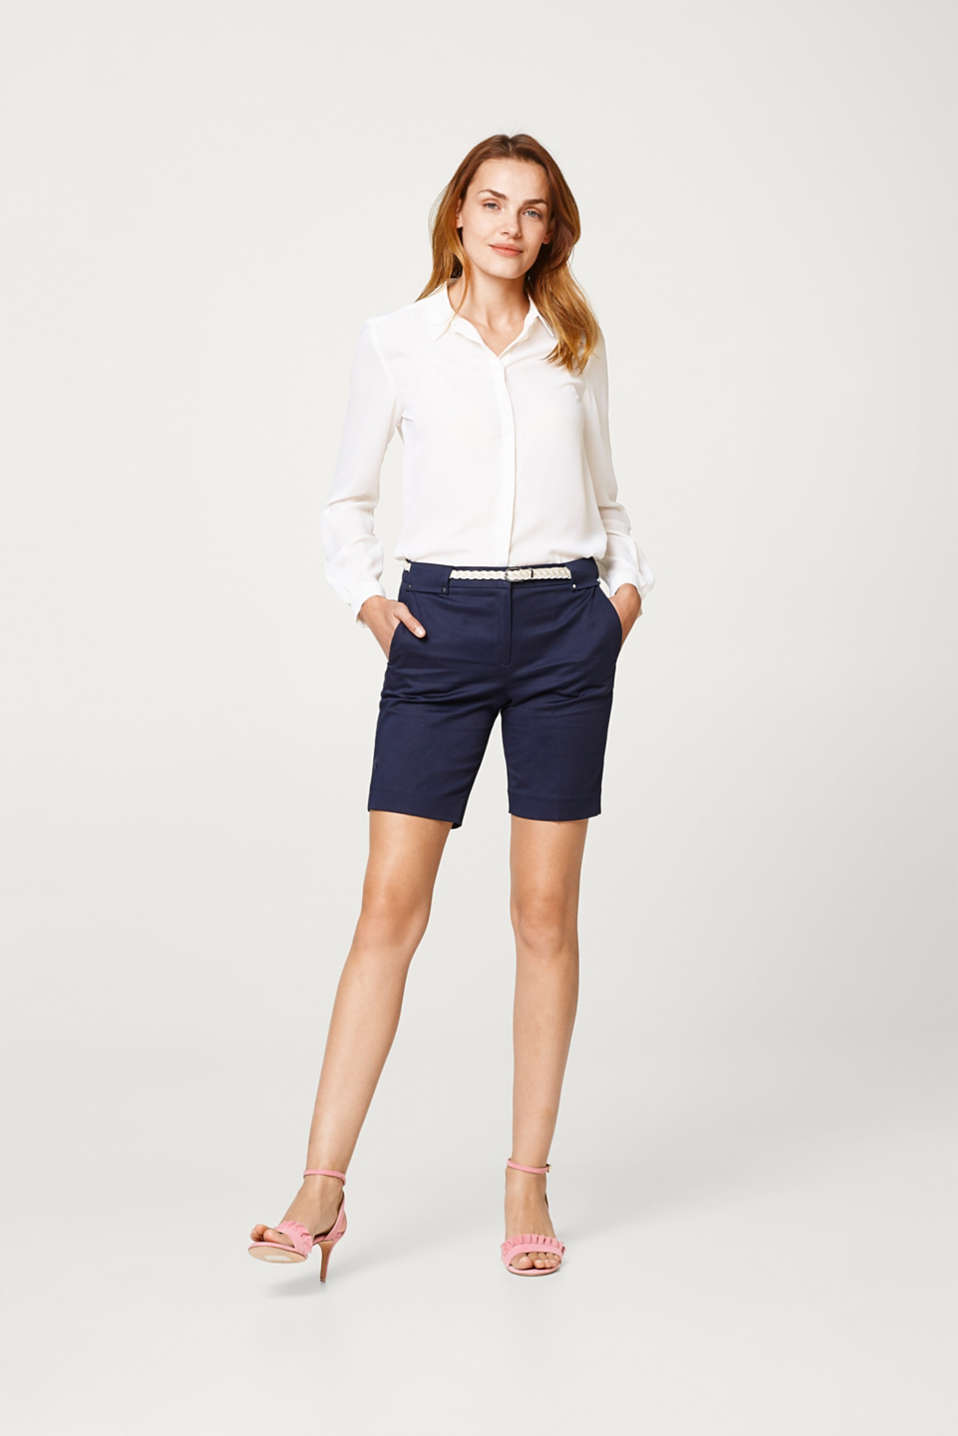 Stretch Bermudas in a business look with a braided belt